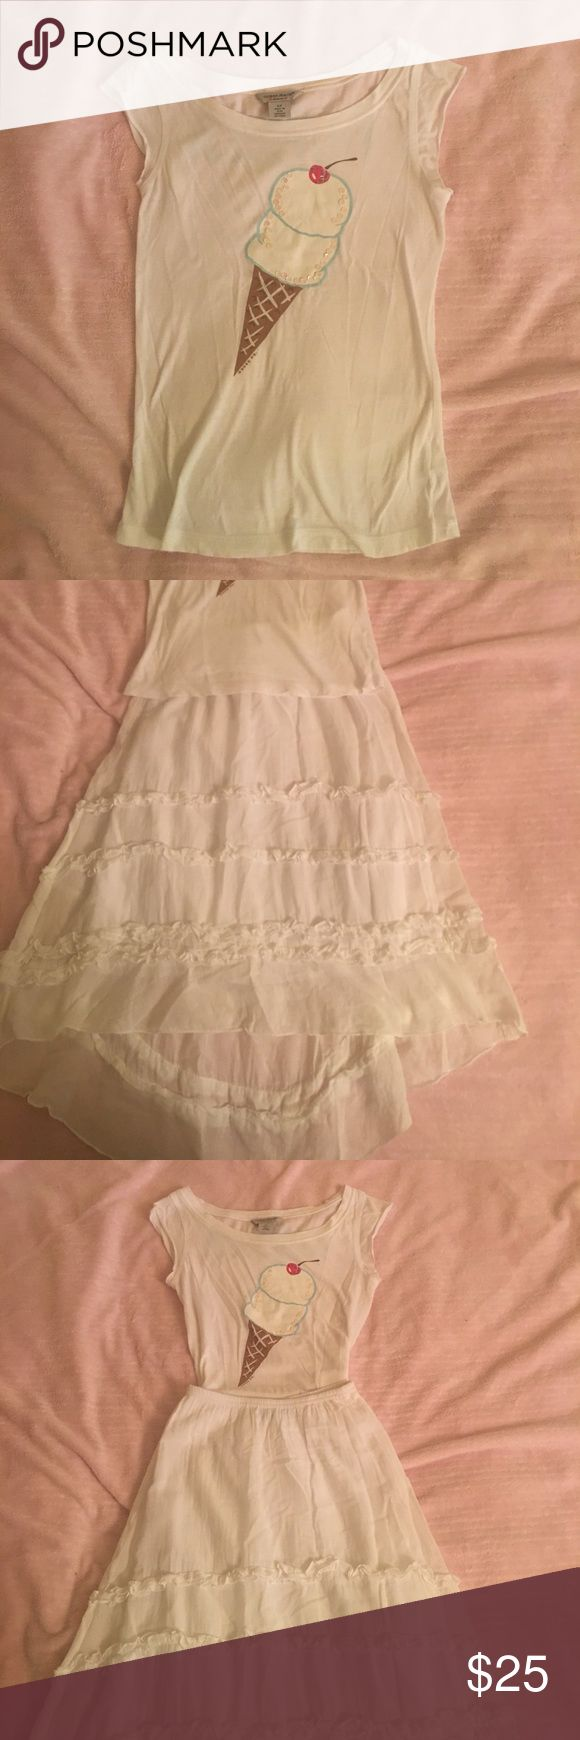 Kids- Adorable ice cream tee and long white skirt Kids, (girls) ice cream tee by guess jeans sz. Sm. About 7-10 and long ruffled skirt, longer in back by une, deux , trois. So adorable maybe worn once, no stains, holes or pulld, looks brand new on deux trois Matching Sets